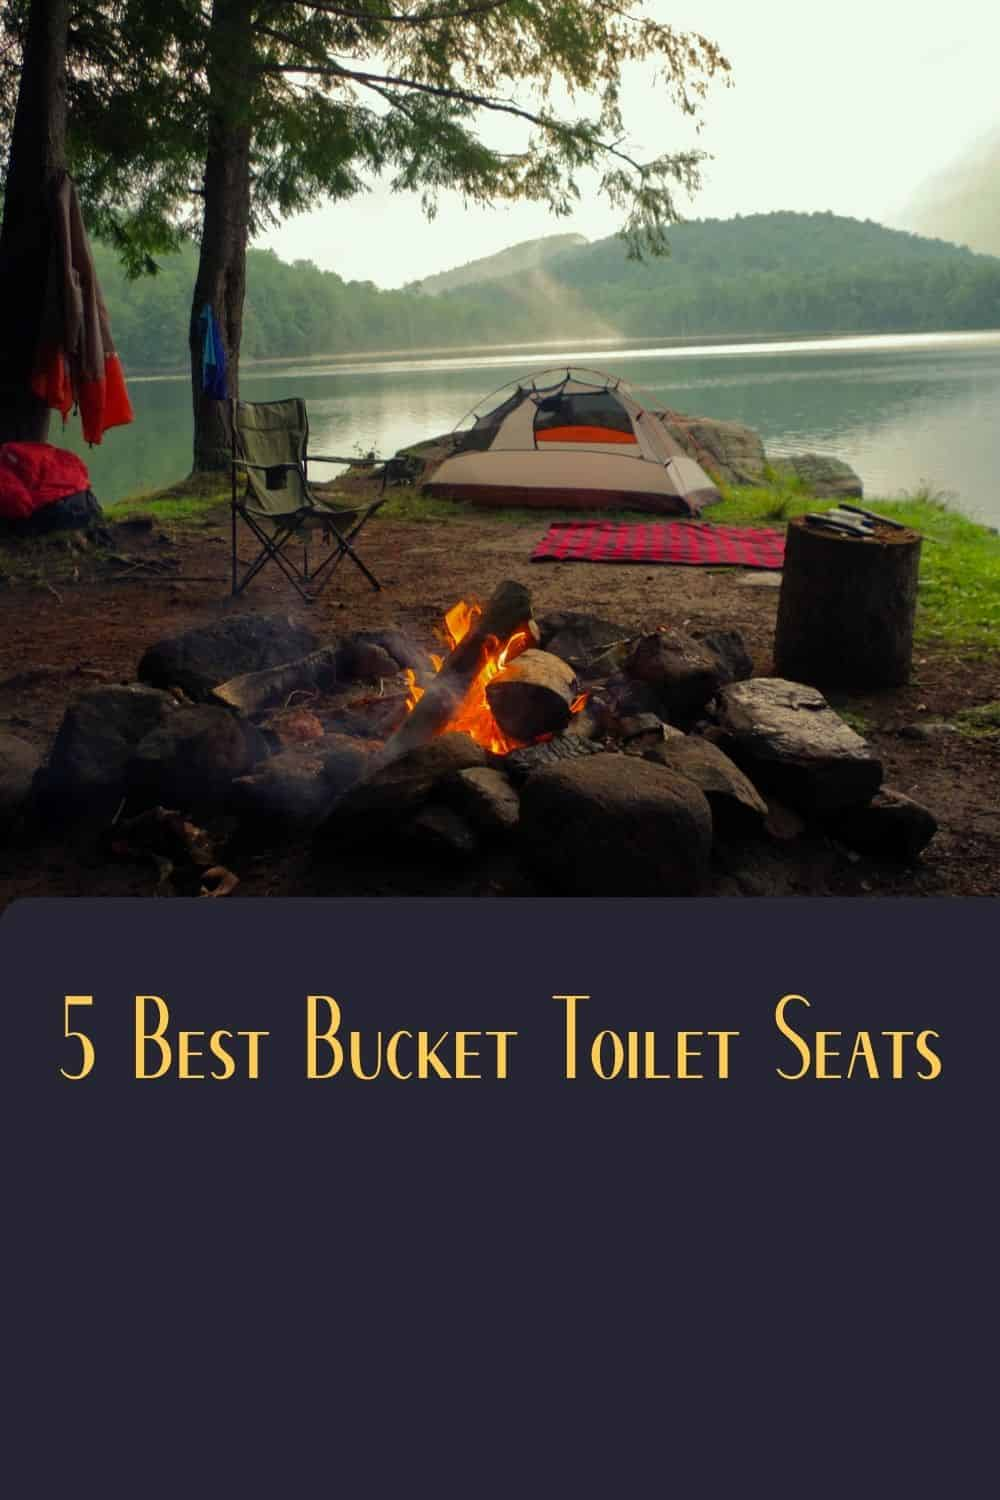 Pinterest image for 5 Best Bucket Toilet Seats